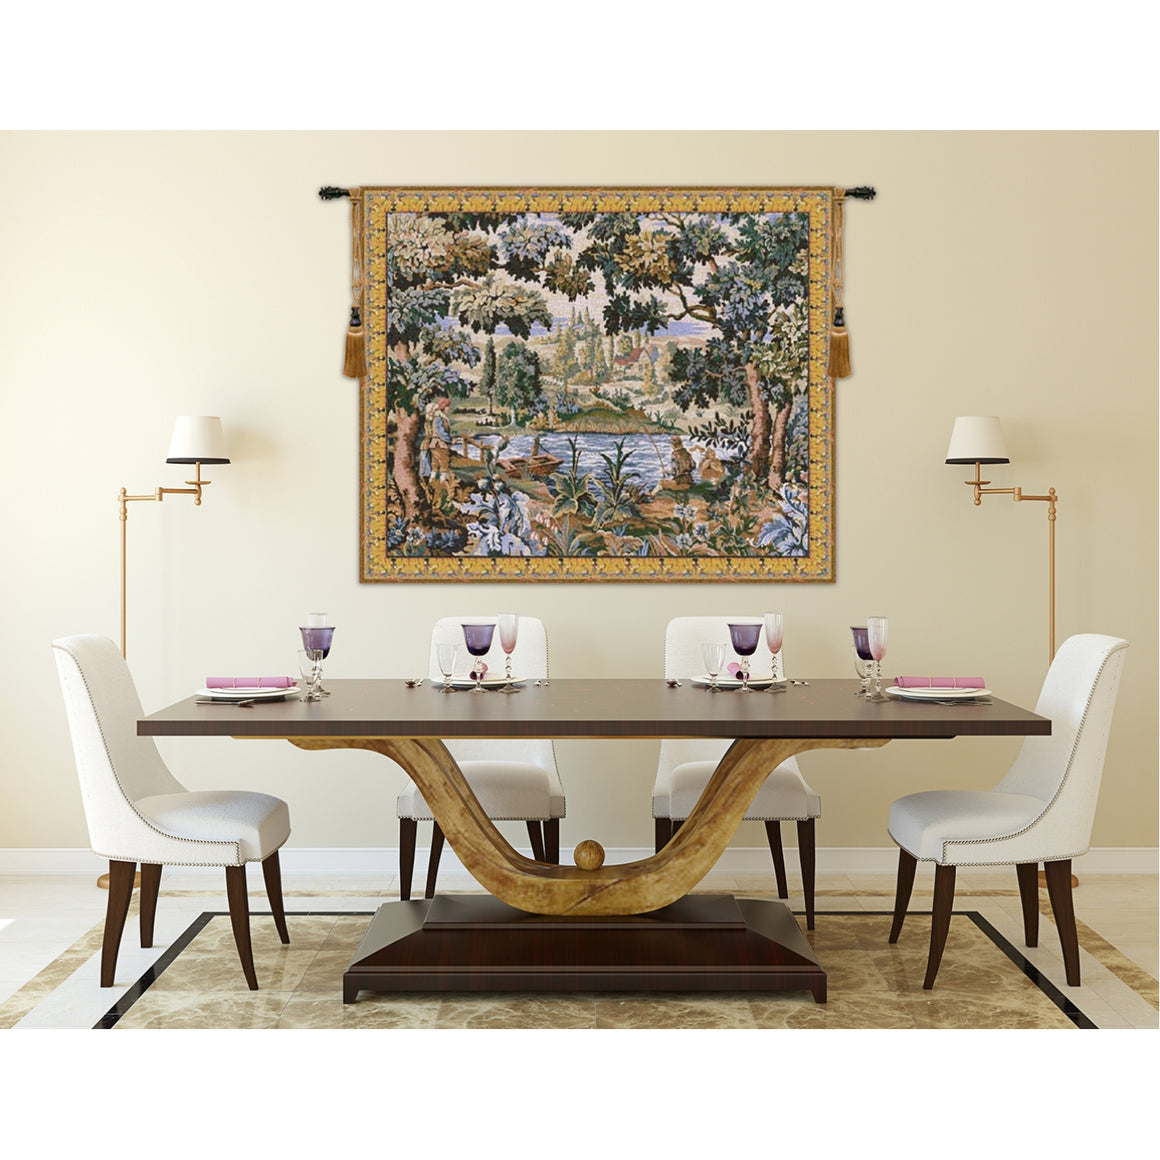 Paysage Flamand Village European Hanging Wall Tapestry